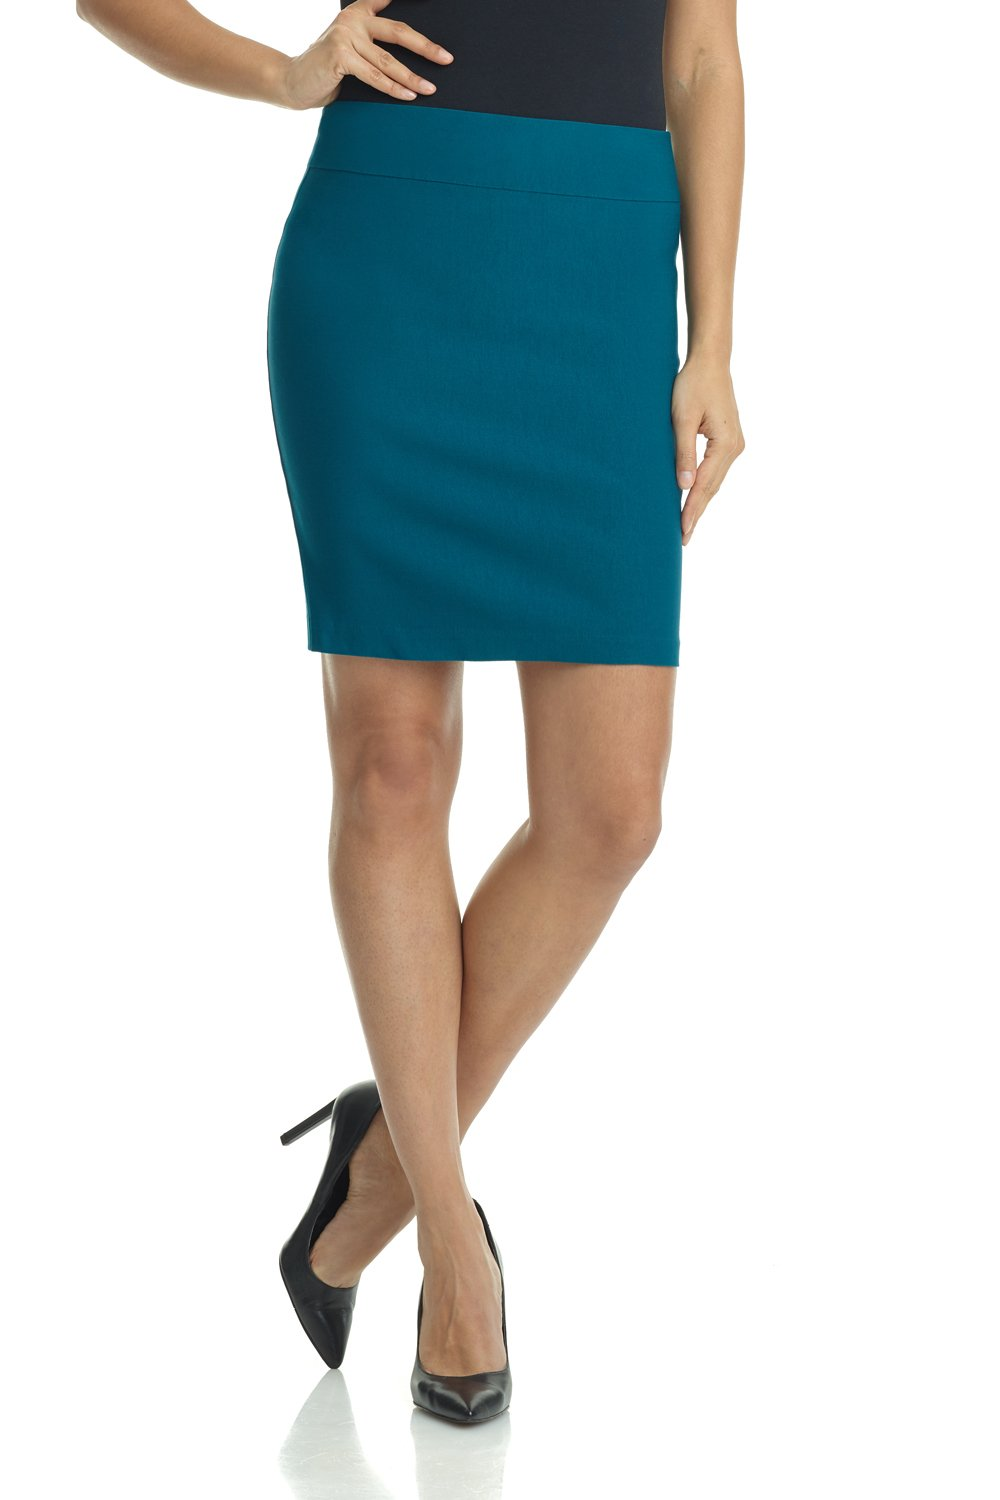 Rekucci Women's Ease in to Comfort Stretchable Above The Knee Pencil Skirt 19'' (X-Small,Teal)